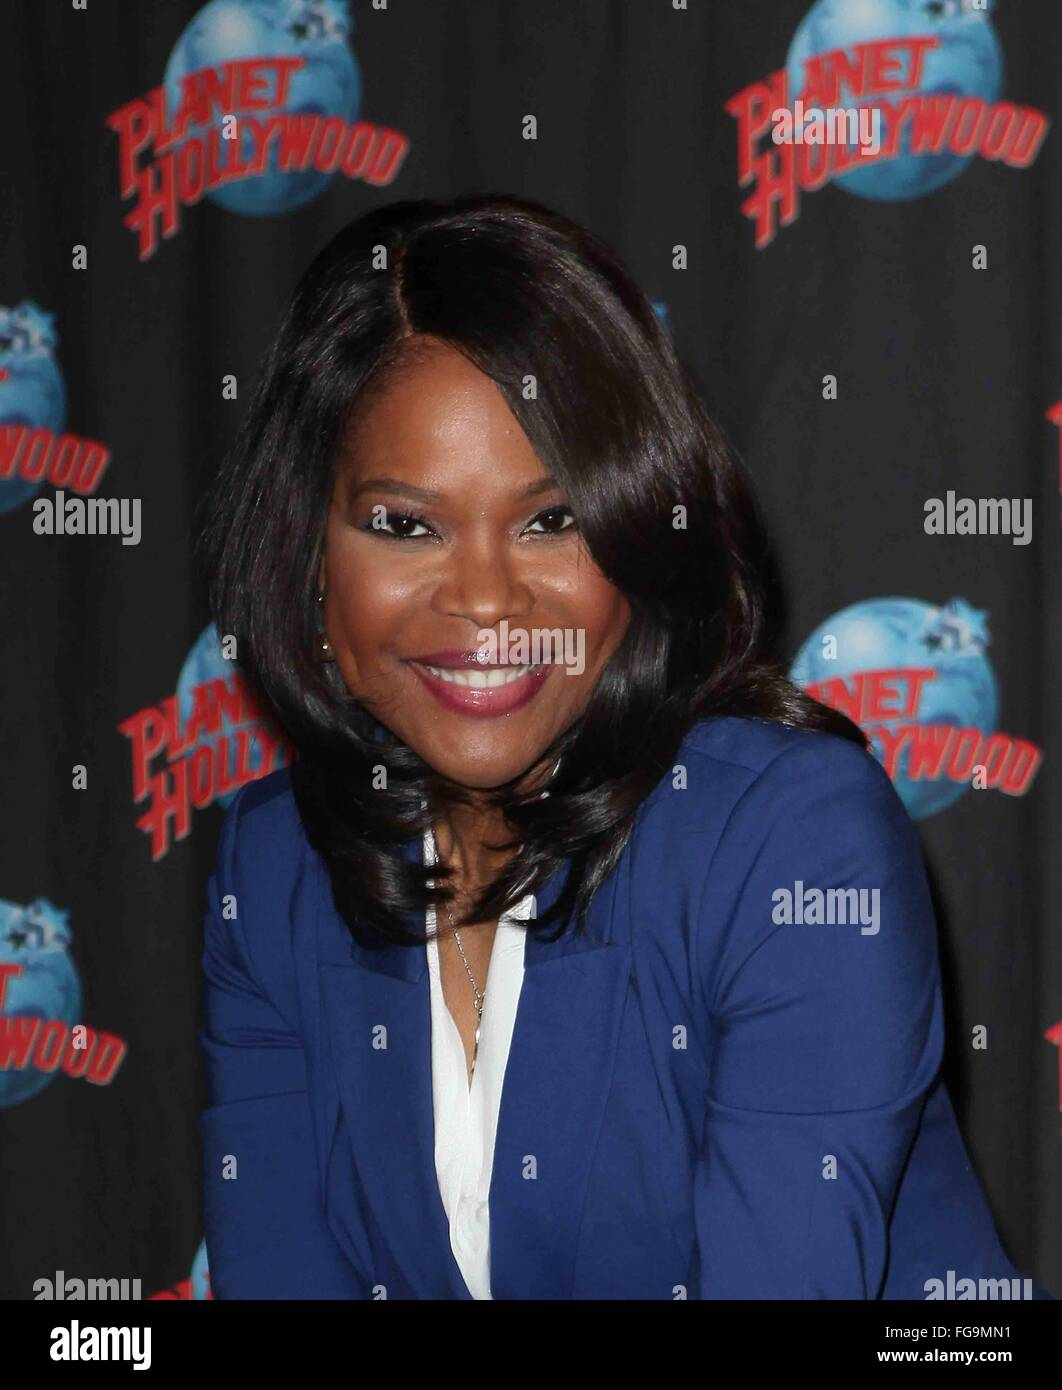 Forum on this topic: Bobbie Phillips, angela-robinson-actress/